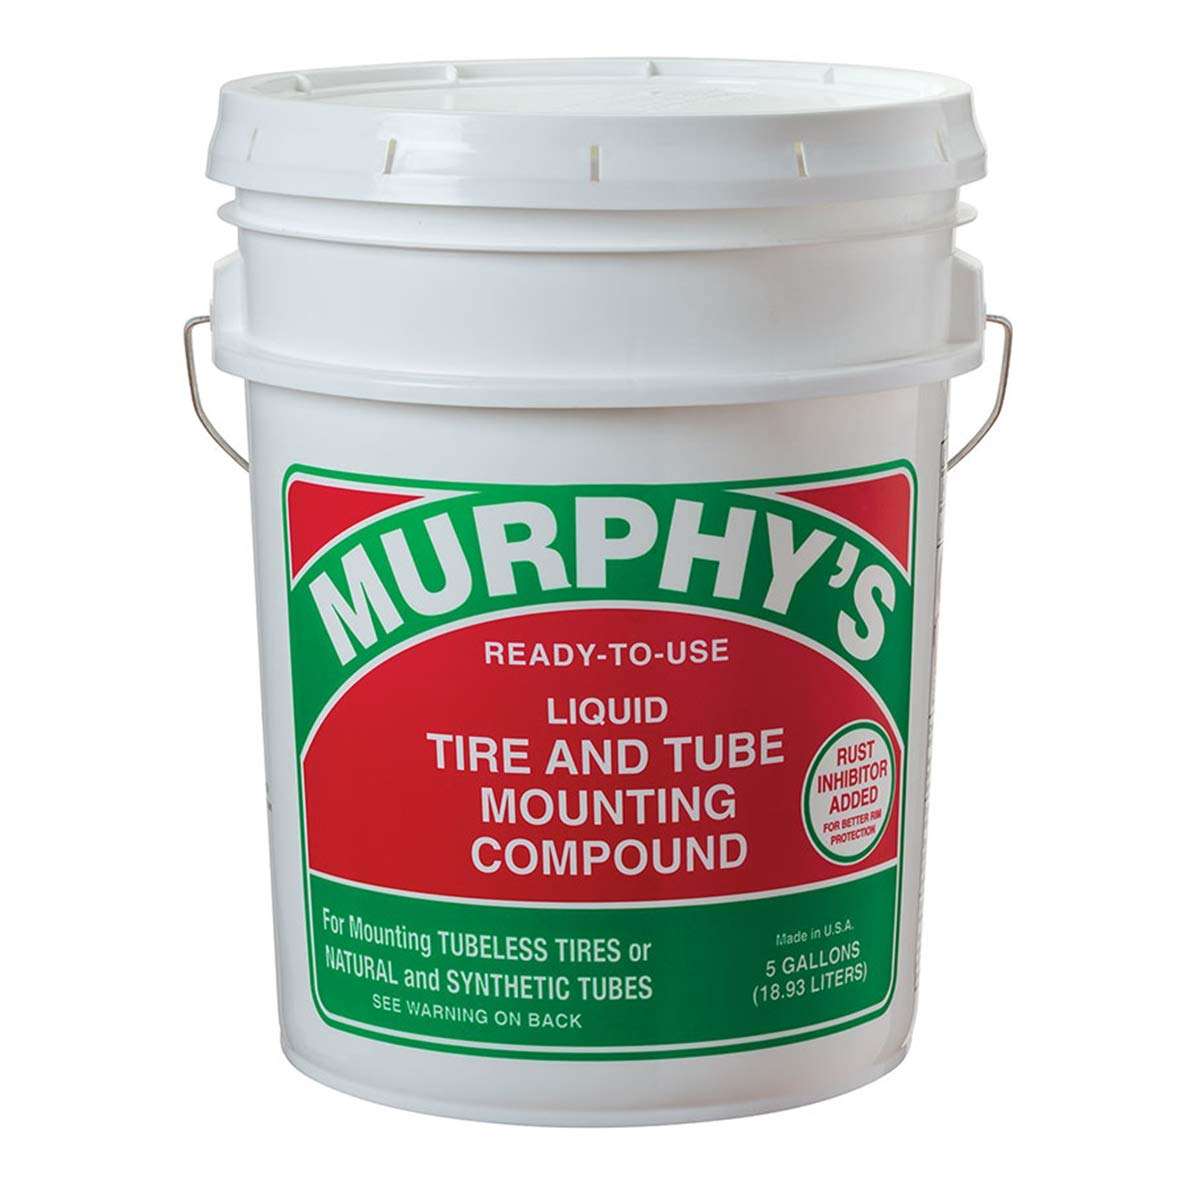 Murphy's 5-Gallon Liquid Tire & Tube Mounting Compound by Murphy's